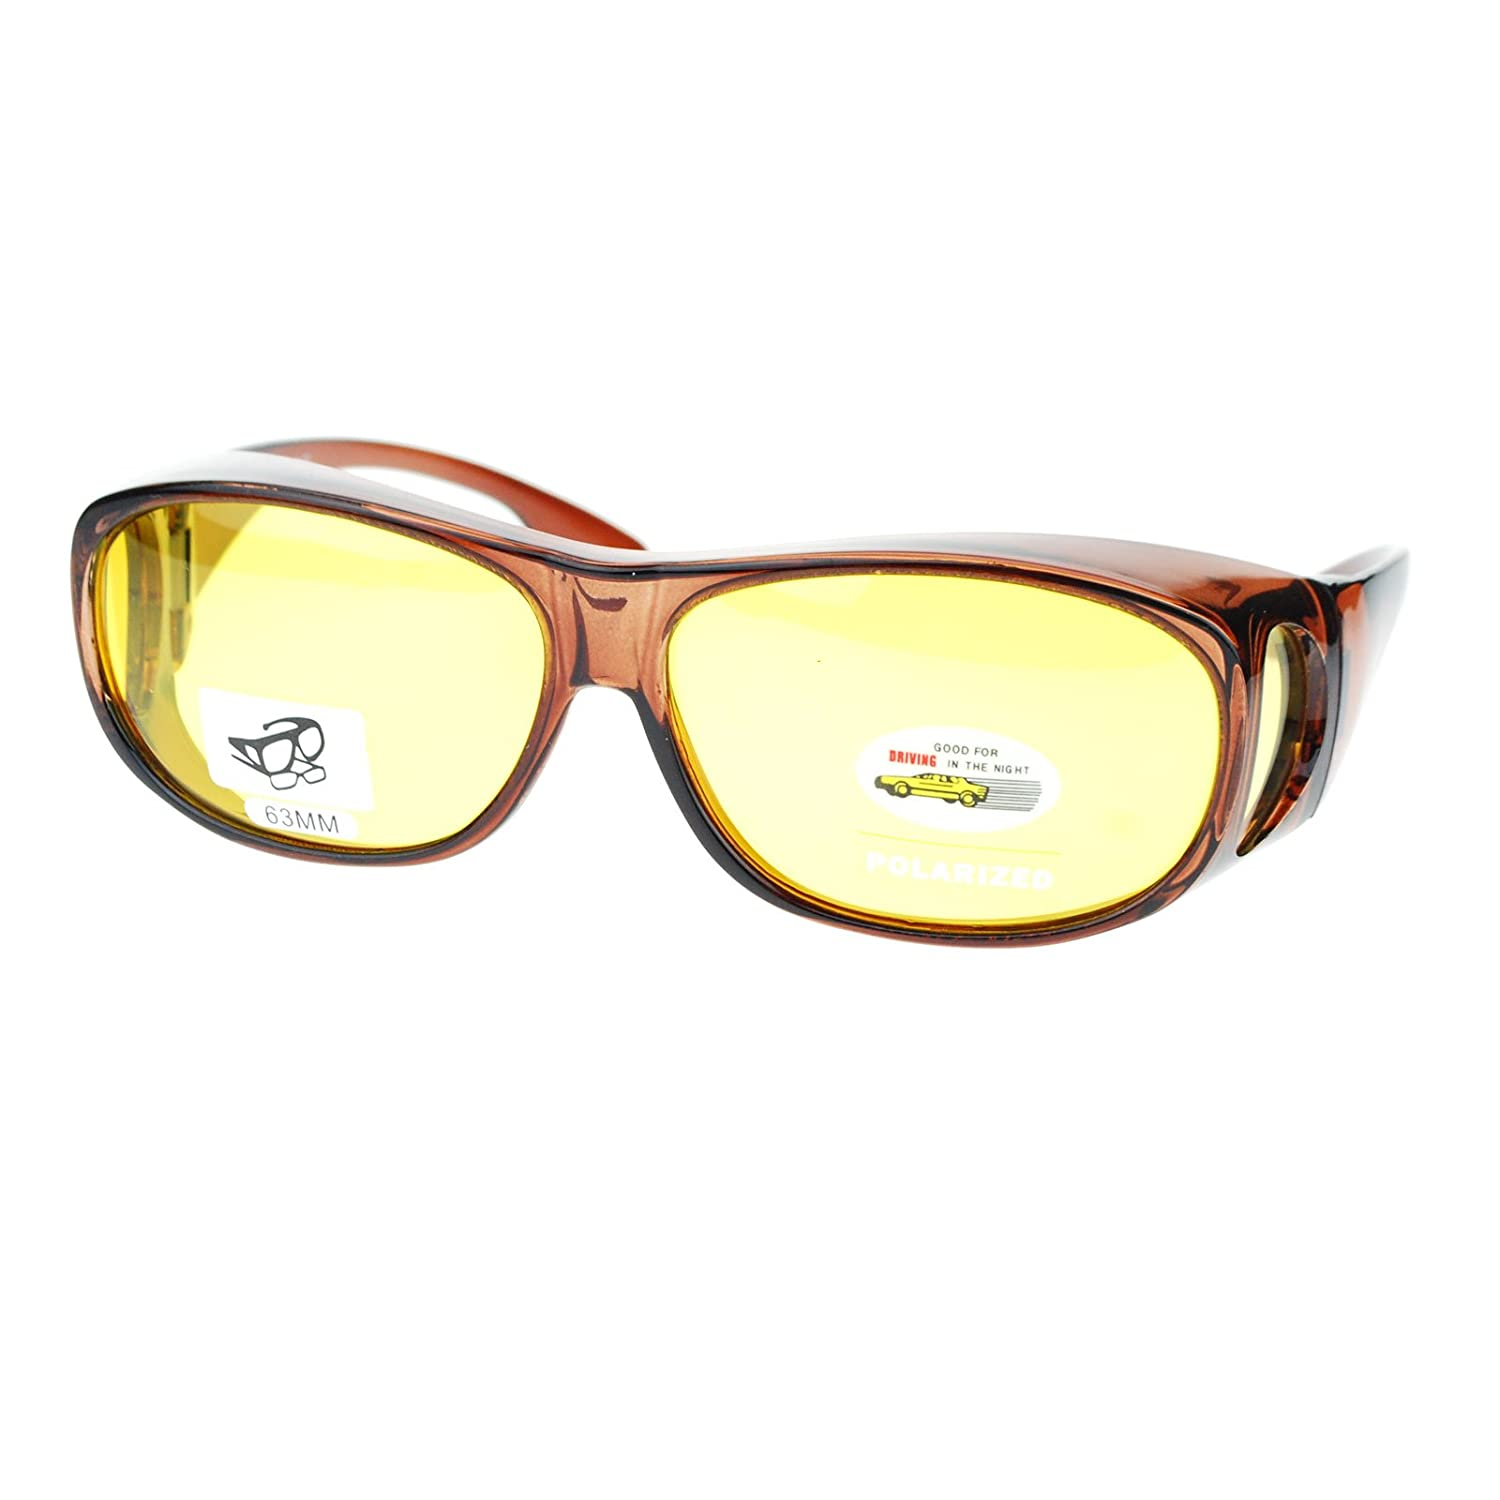 Unisex Polarized Yellow Night Driving Lens 63mm Fit Over Sunglasses p2865polnd-bk